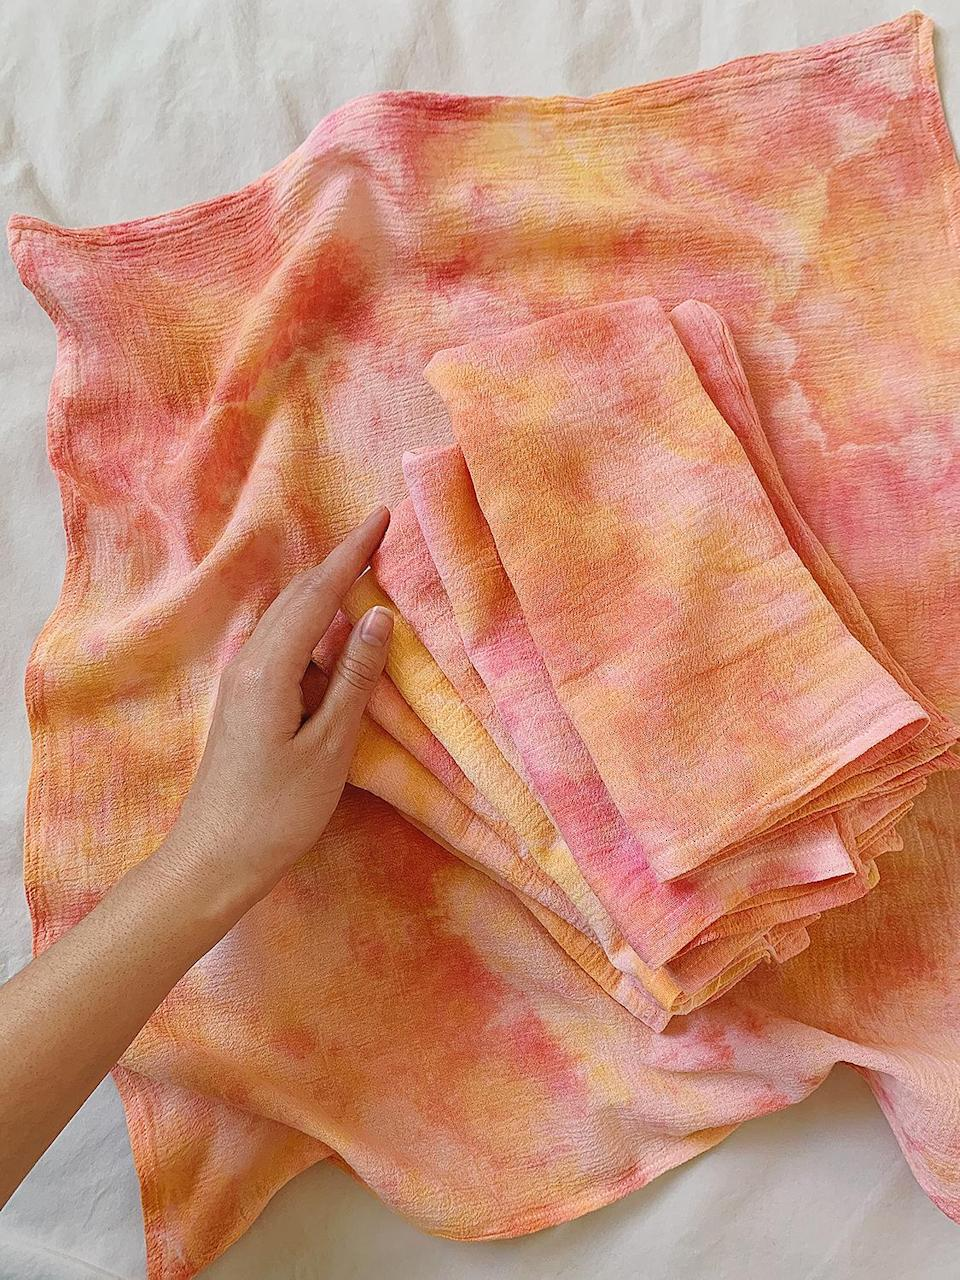 """<p>Cloth napkins are a clear signifier of adulting, if you ask us, but they can often feel too stiff or precious. Enter this whimsical tie-dye set from Etsy shop Apricot LA, which strikes the perfect balance of casual and elegant (not to mention eco-friendly). Available in a number of colorways, there's a handmade set to elevate all of the post-pandemic dinner parties you're dreaming of. </p> <p><strong>Buy It!</strong> $25 for 2, <a href=""""https://www.awin1.com/cread.php?awinmid=6220&awinaffid=272513&clickref=PEOGeniusHolidayGiftIdeasUnder25sdodd1271LifGal12372801202011I&p=https%3A%2F%2Fwww.etsy.com%2Flisting%2F769651316%2Fjuicy-handmade-cloth-napkins%3Fref%3Dshop_home_active_14"""" rel=""""nofollow noopener"""" target=""""_blank"""" data-ylk=""""slk:etsy.com"""" class=""""link rapid-noclick-resp"""">etsy.com</a></p>"""